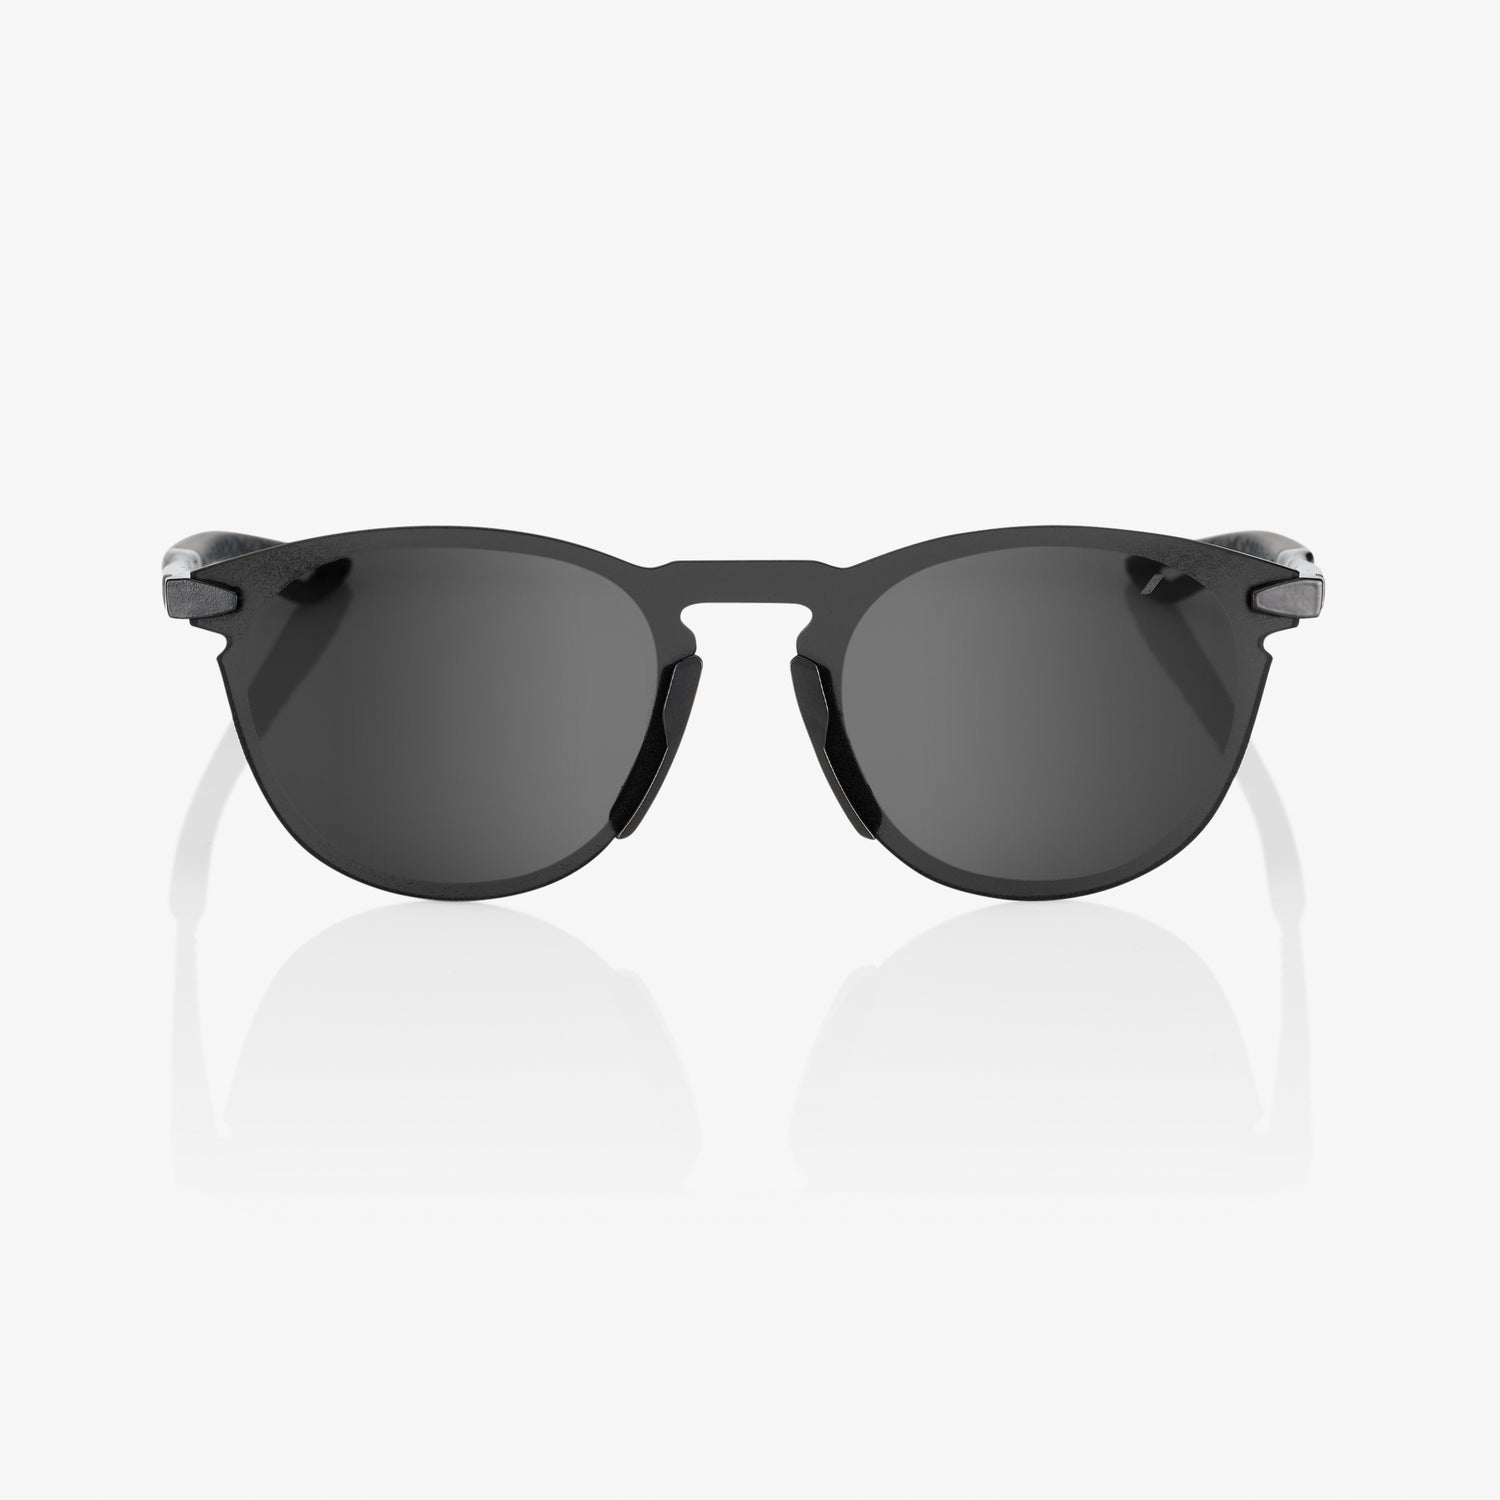 LEGERE Round - Polished Black - Smoke Lens